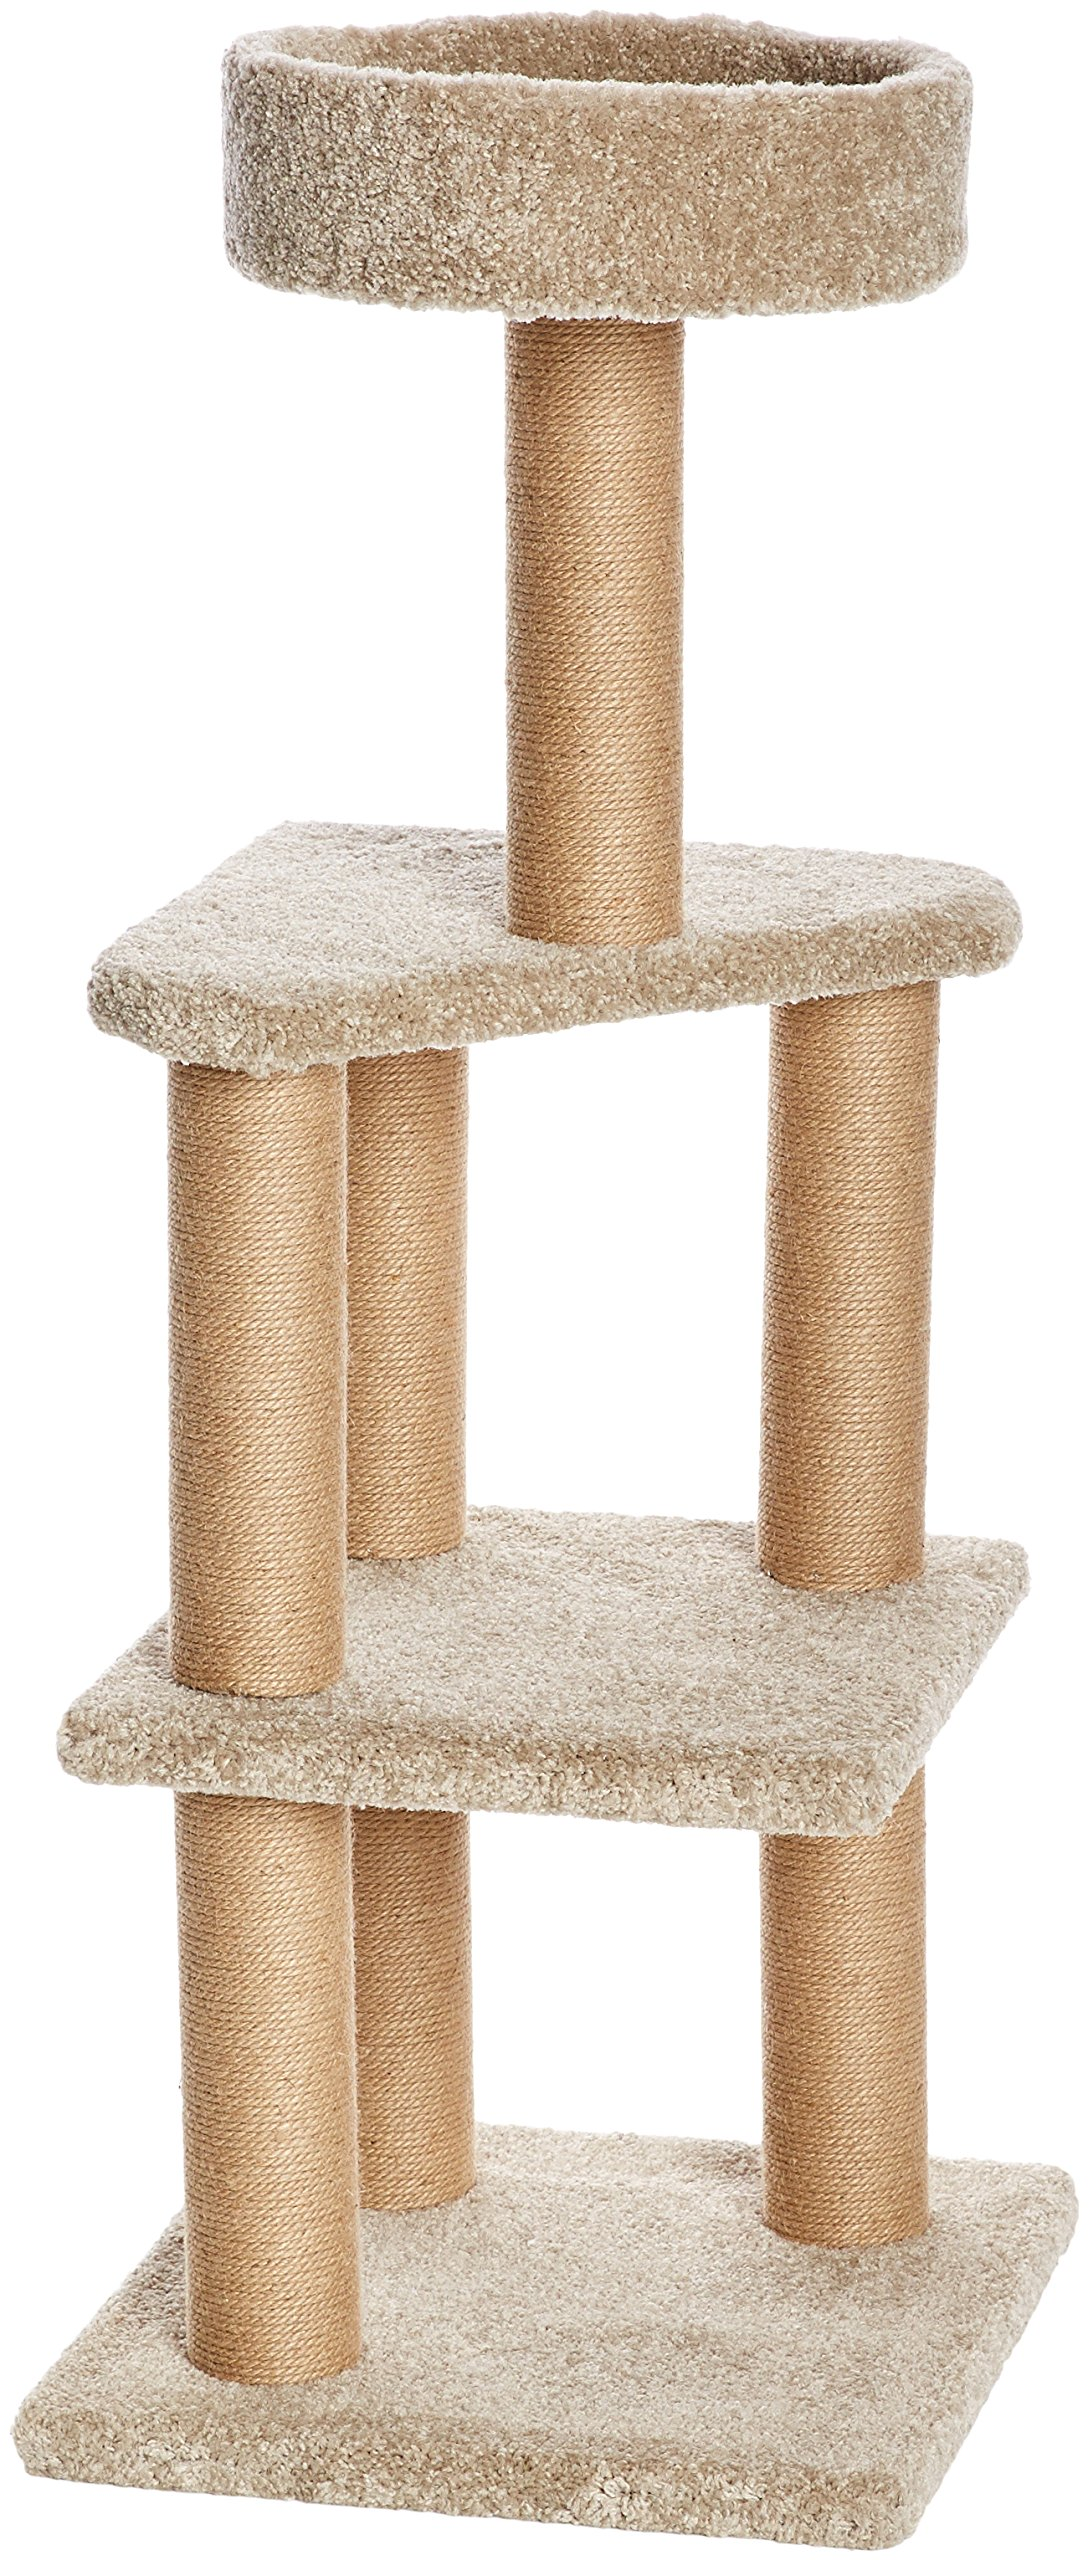 AmazonBasics Large Cat Condo Tree Tower with Scratching Post - 18 x 18 x 46 Inches, Beige by AmazonBasics